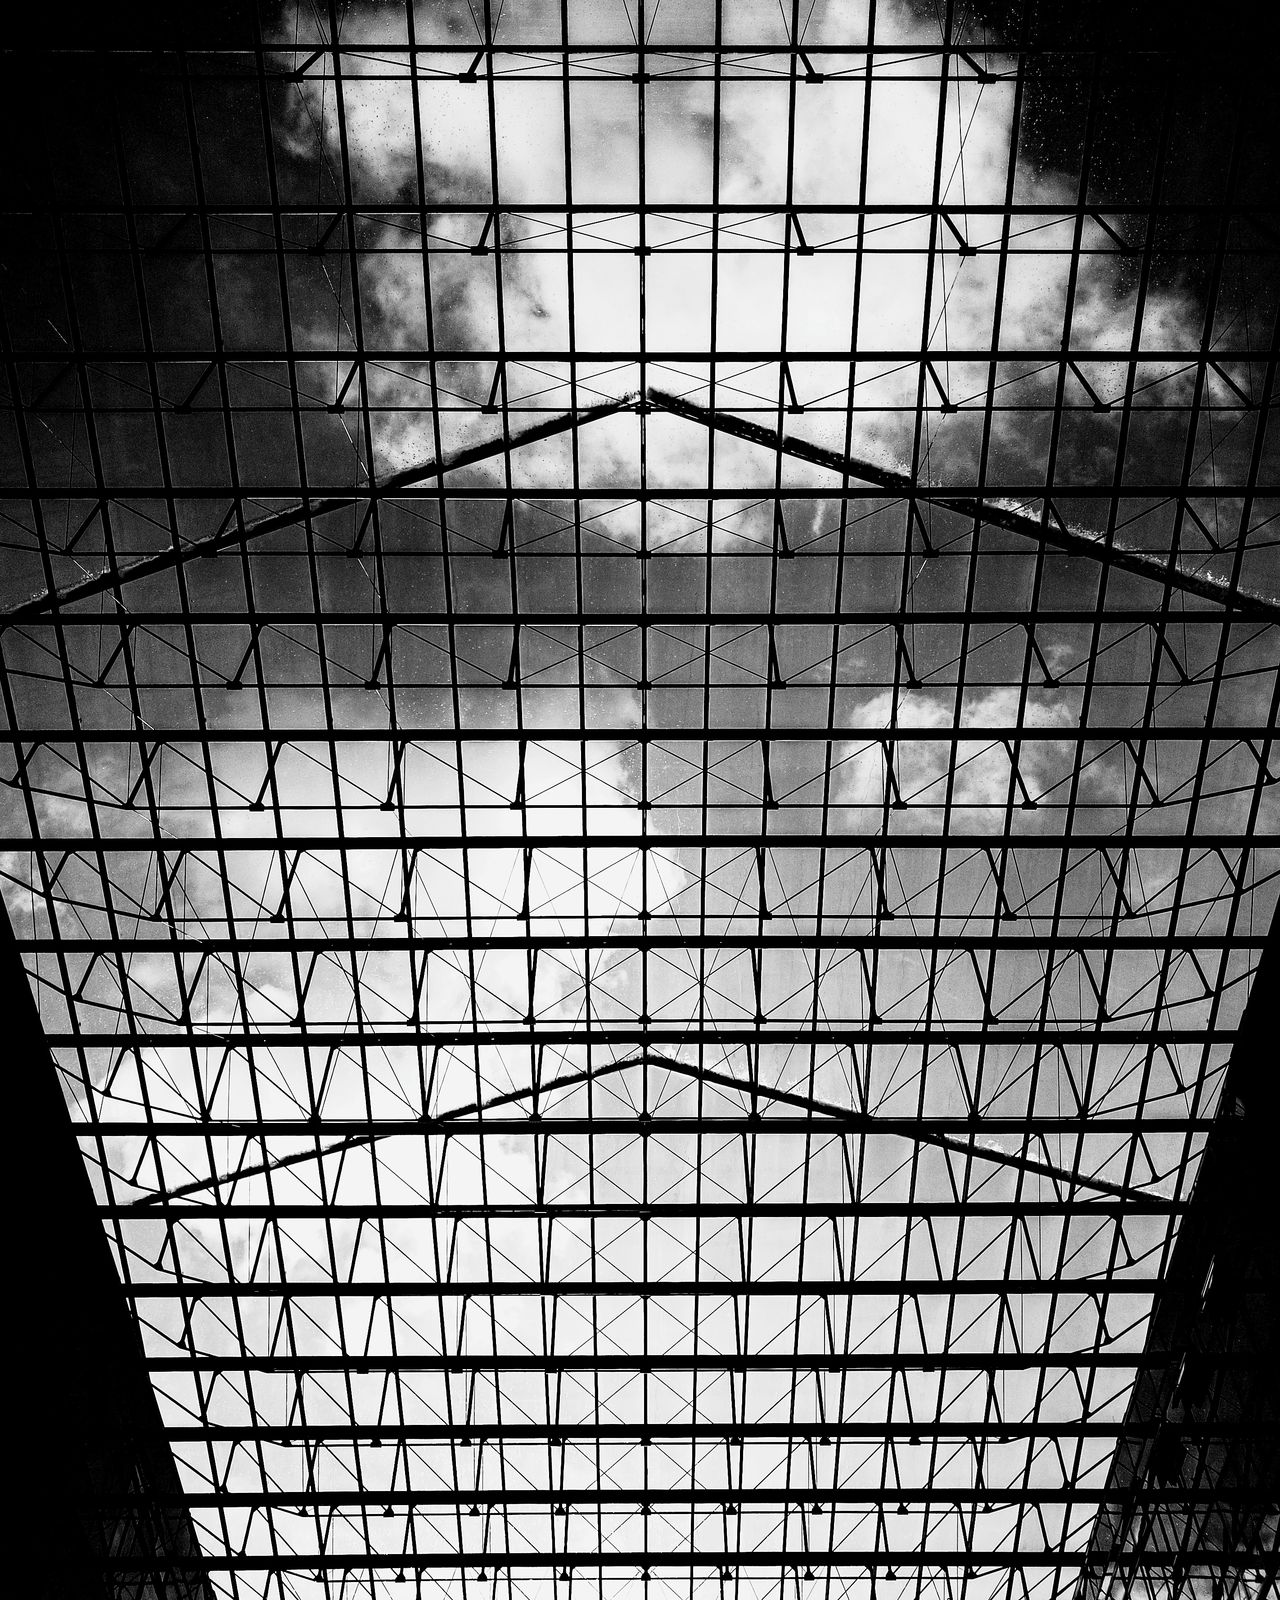 Framedclouds Architecture Built Structure Berlin Photography Berlin Architecture_collection Urban Geometry Architectural Detail Architecturelovers Minimalistic Monochrome Berlin Monochrome Berlin Black & White Berlin Schwarzweiss Monochrome Berlin Schwarzweiß Blackandwhite Photography Looking Up Minimalism Minimalist Architecture Architectural Column HuaweiP9 Huawei Monochrome